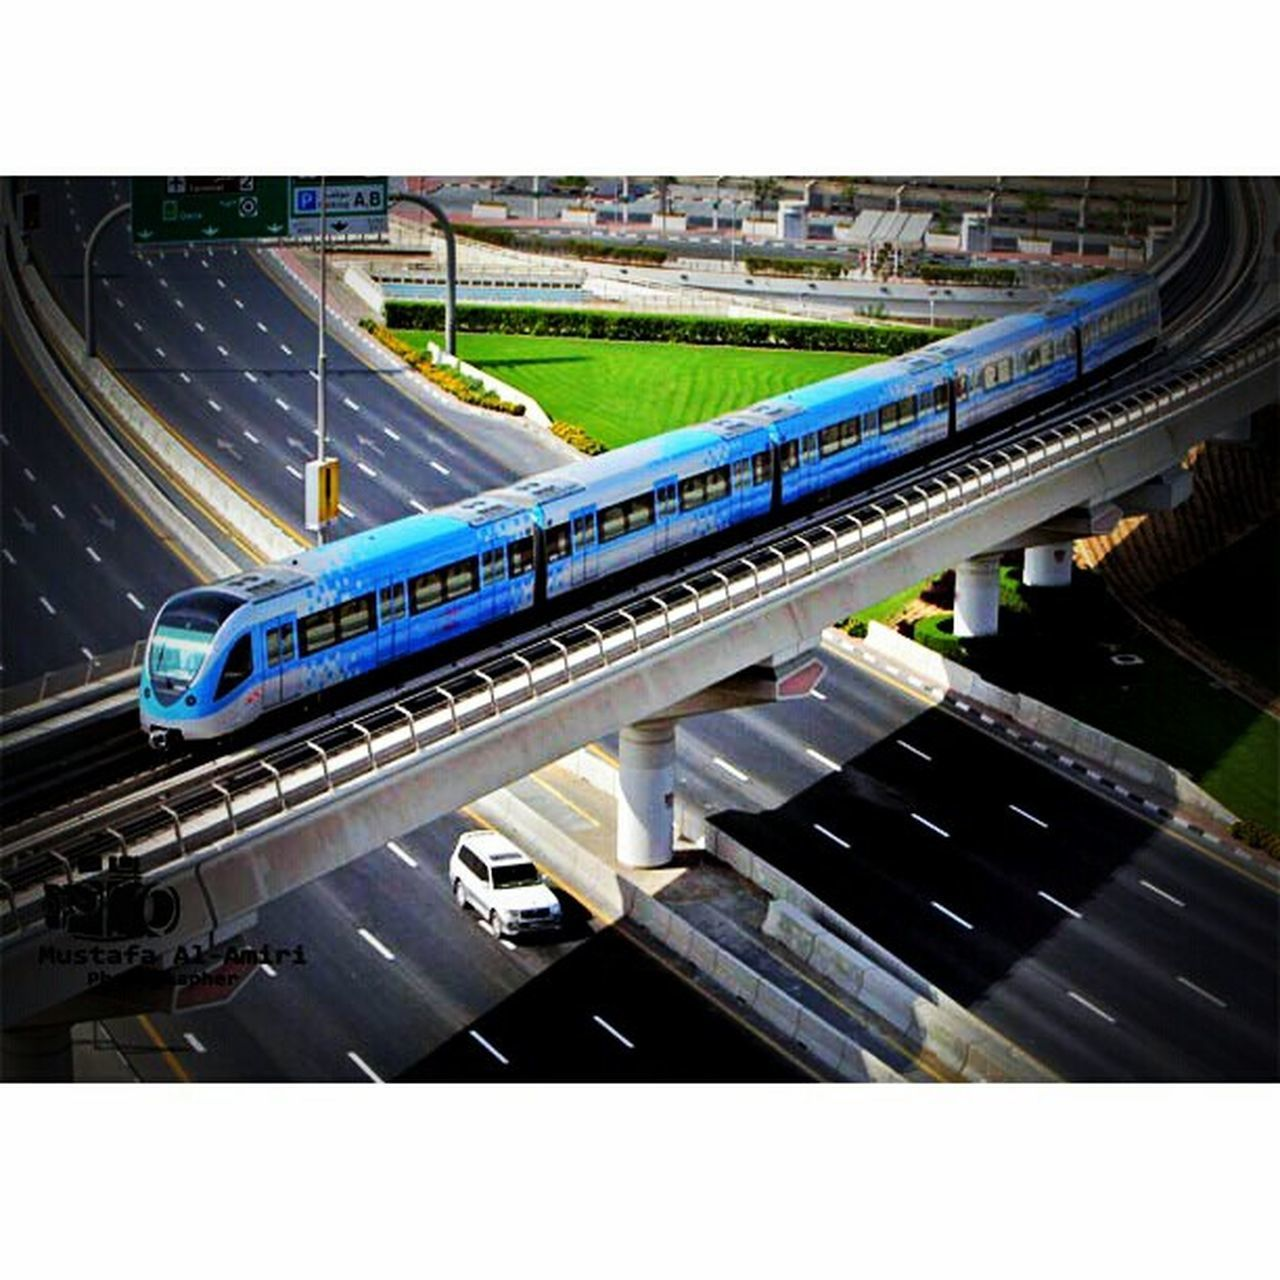 transportation, architecture, overpass, city, built structure, bridge - man made structure, high angle view, road, no people, motion, outdoors, day